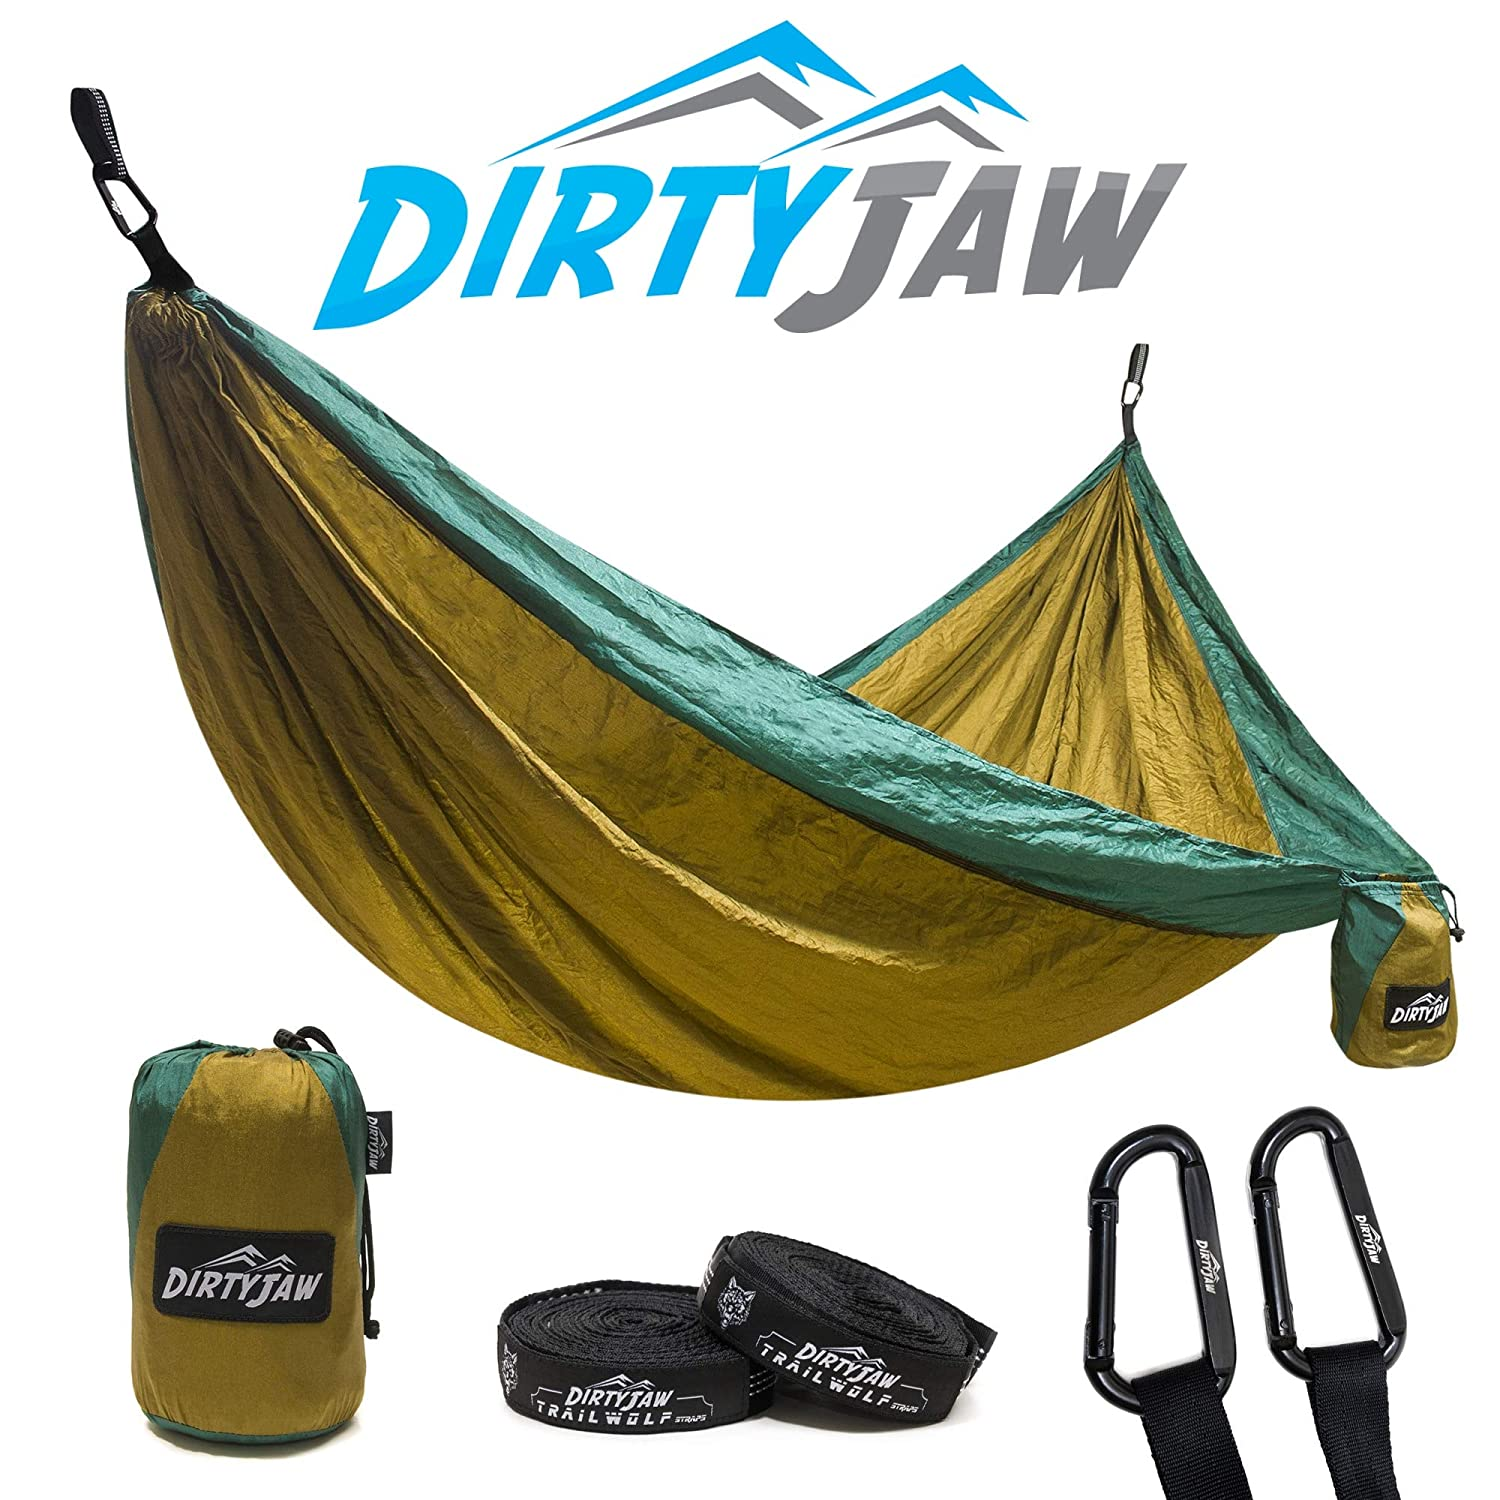 DirtyJaw Double Hammock Set Parachute Lightweight Nylon with Bonus TrailWolf Suspension Tree Straps Perfect for Camping, Portable, Outdoor, Backpacking, Survival Travel USA Brand